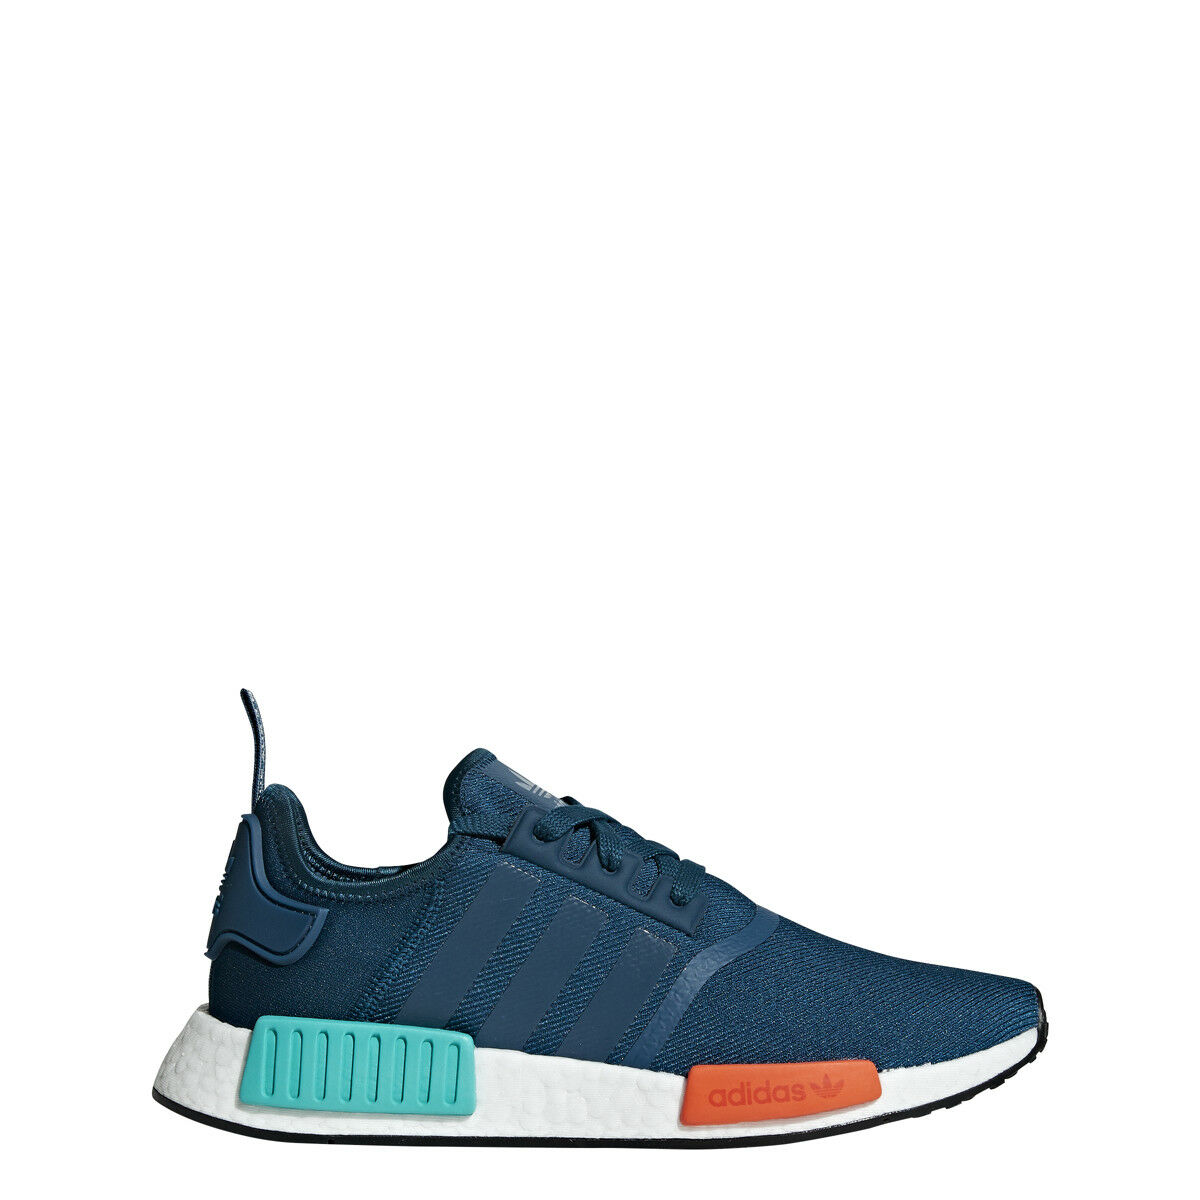 Adidas Mens NMD_R1 Blau Blau Orange - G26510